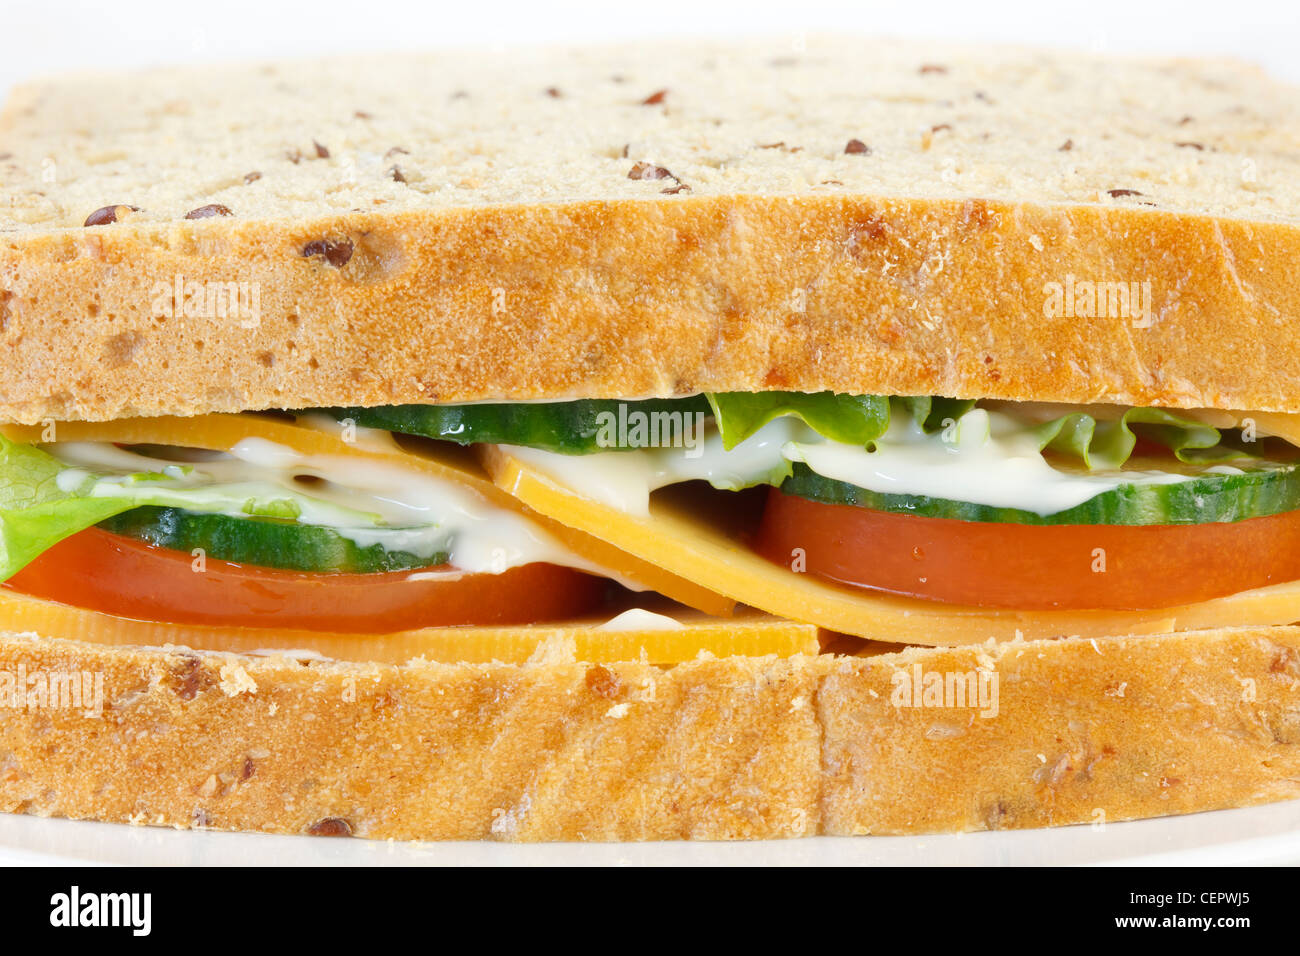 Cheese and salad sandwich - Stock Image